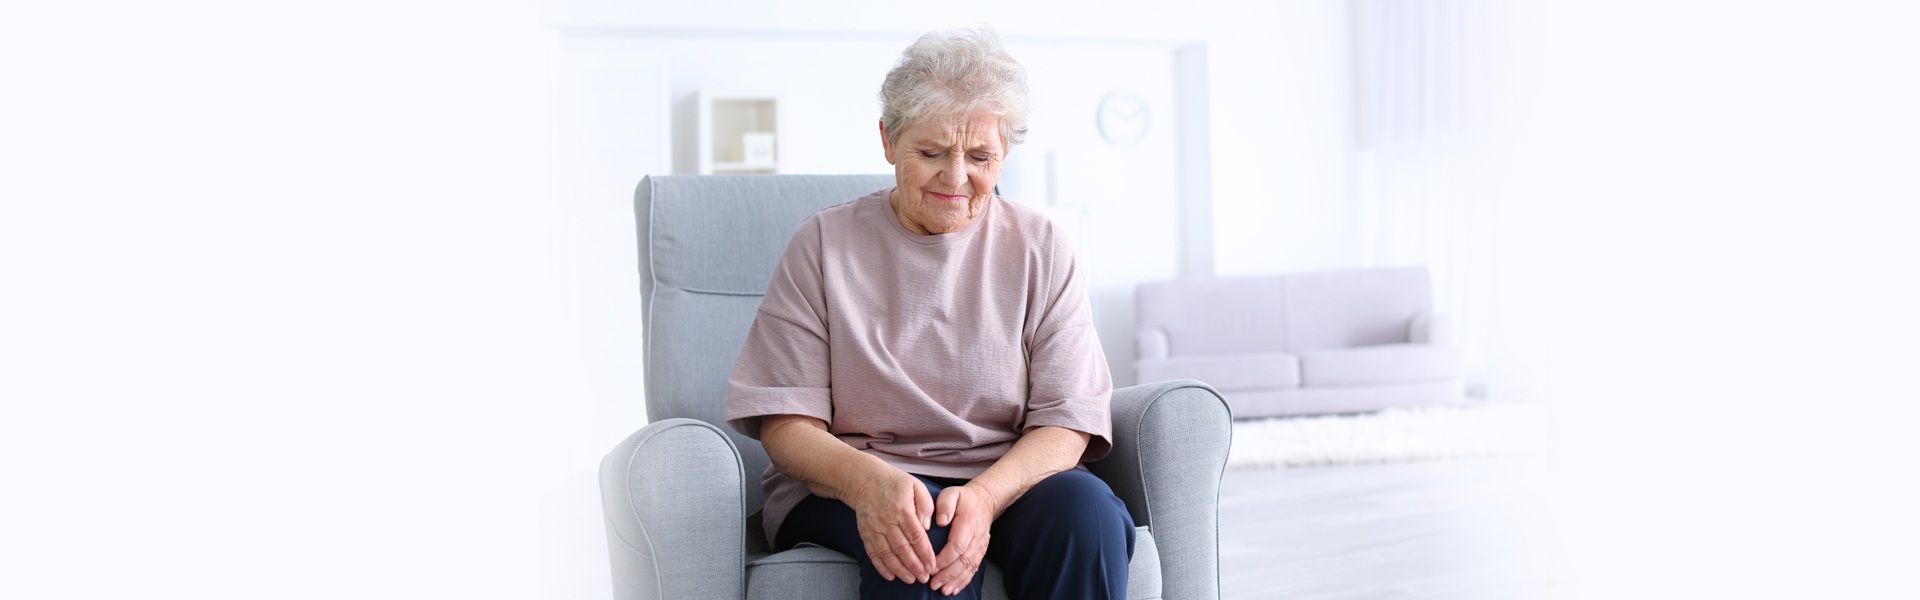 Goodbye Osteoarthritis This New Year With Professional Treatment